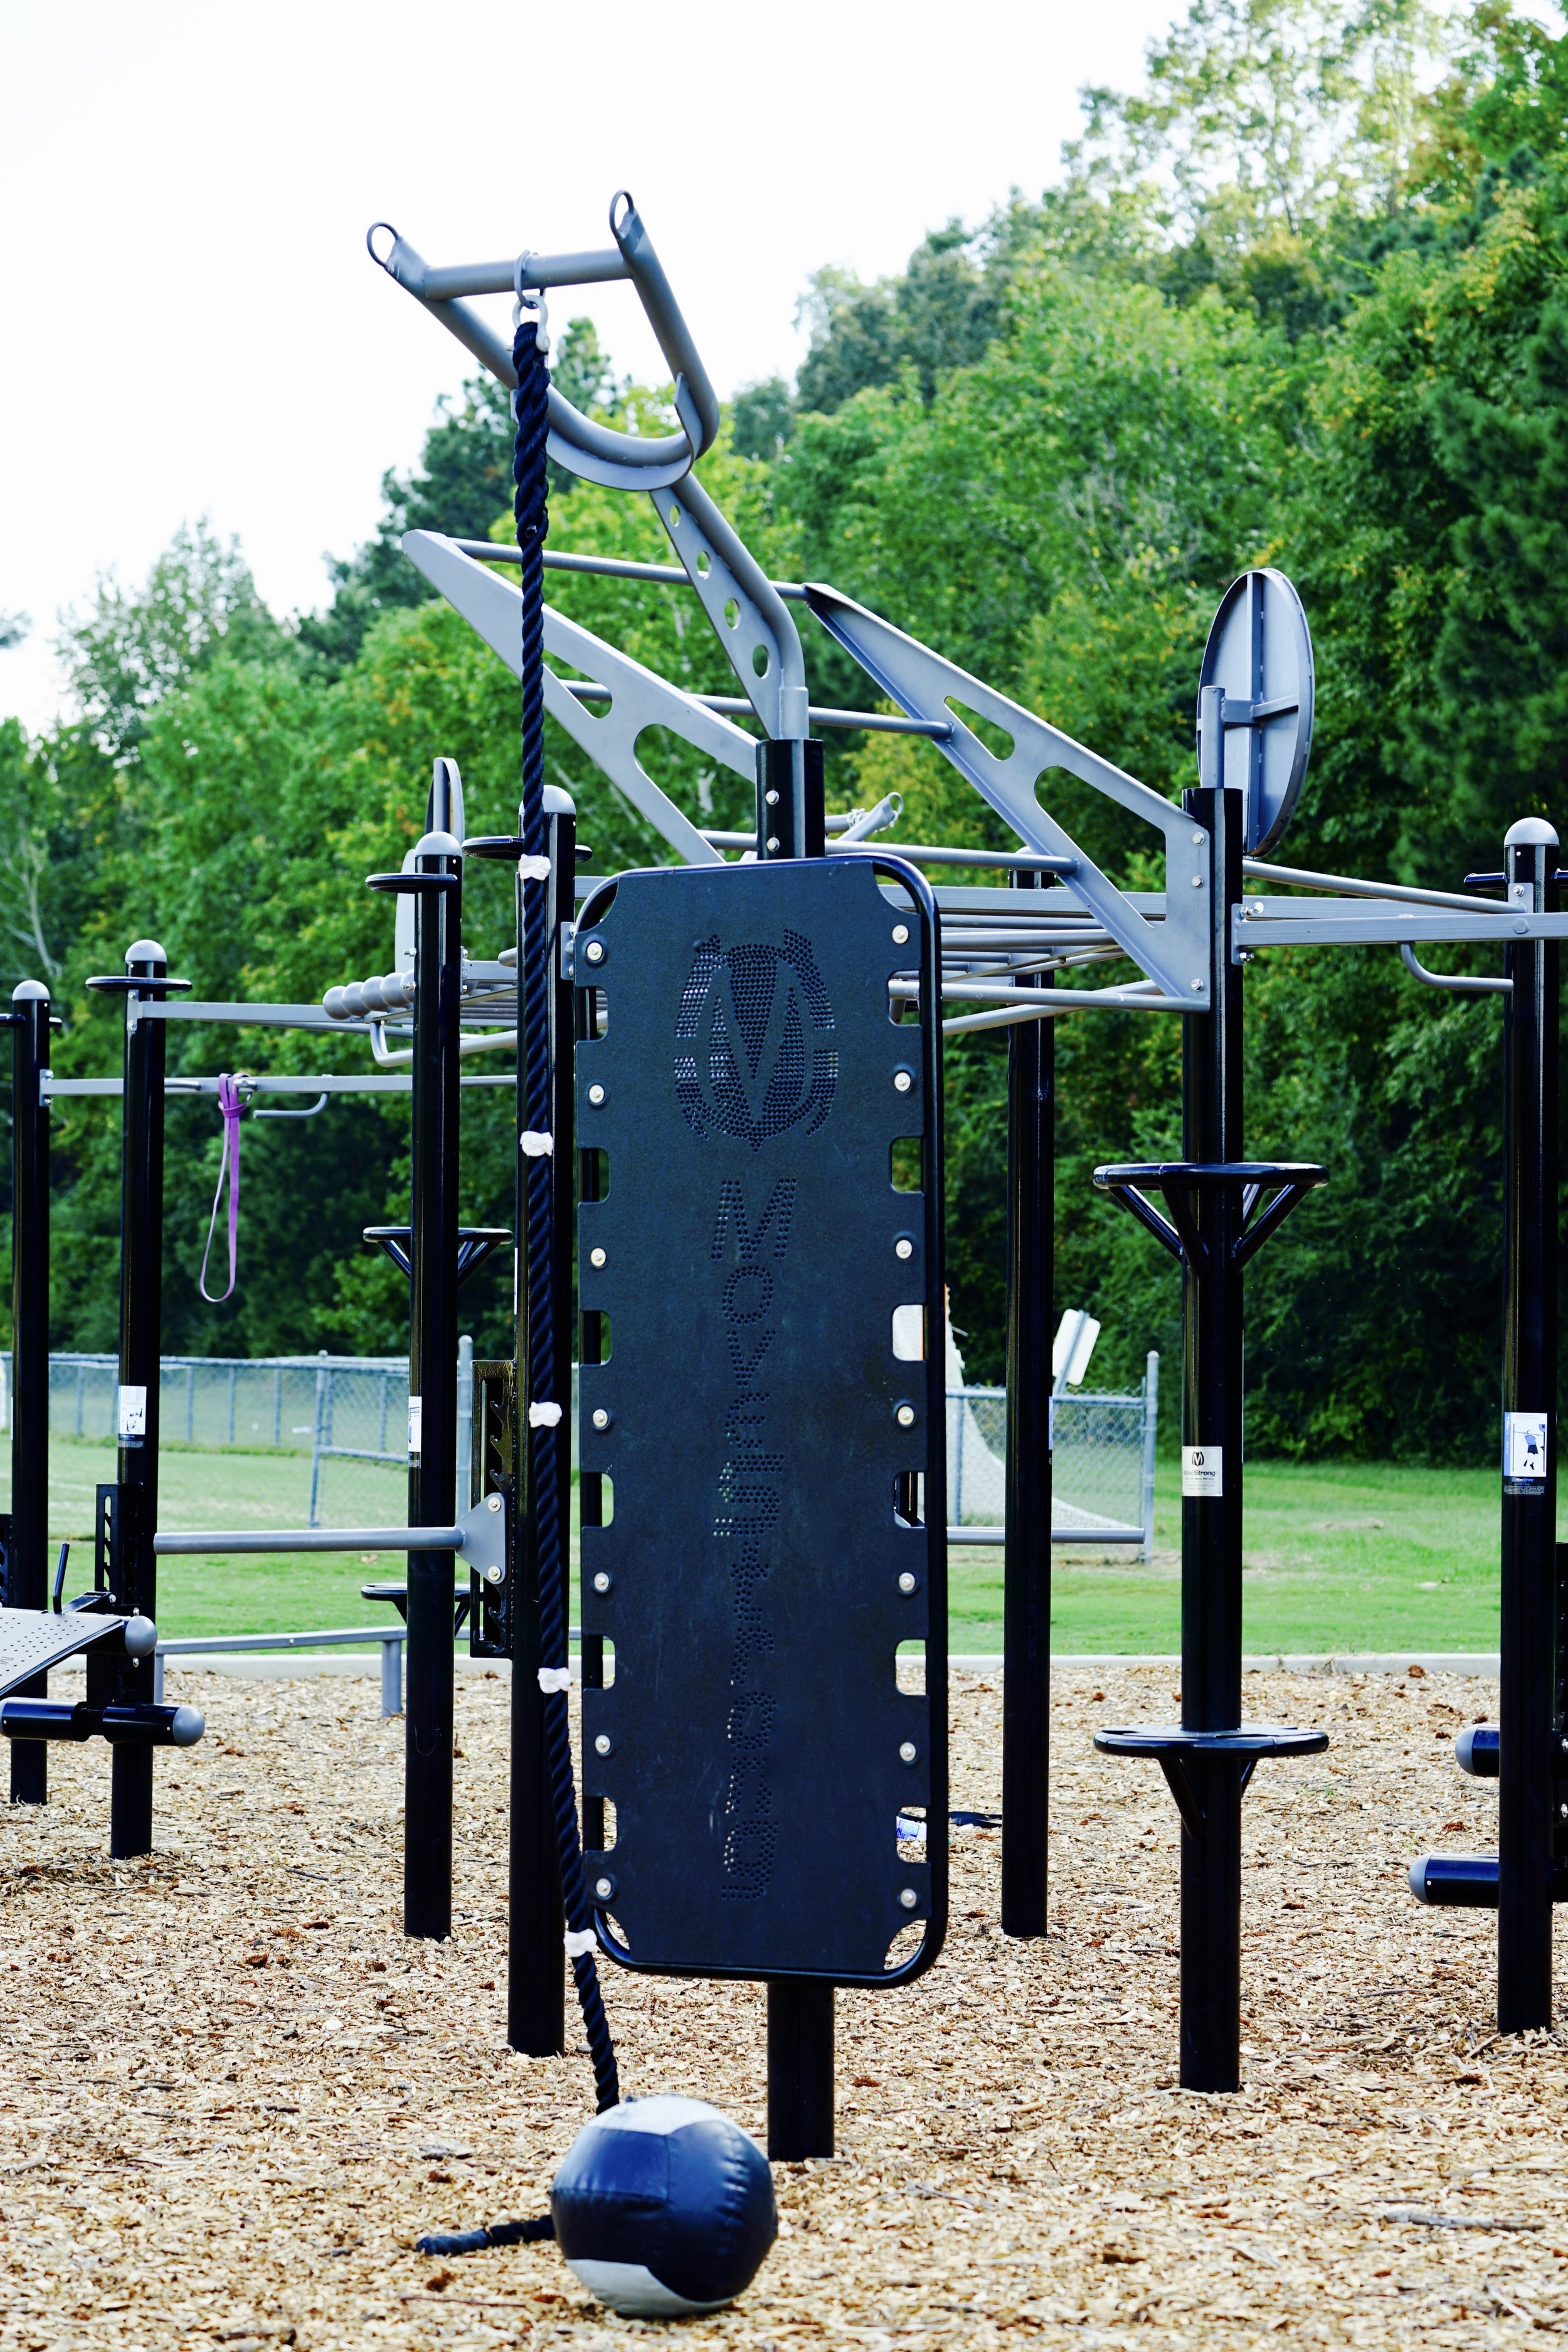 Kickplate Feature Outdoor Fitness